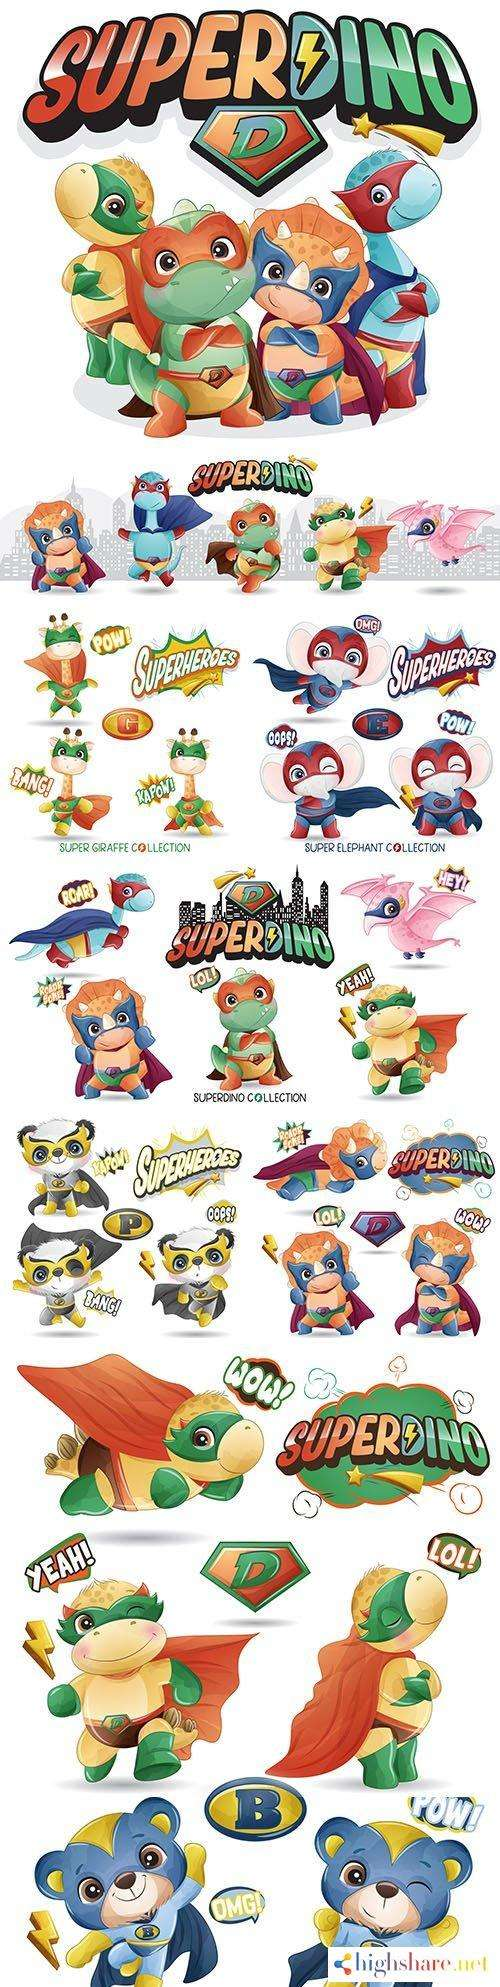 super dinosaur and other heroes funny cartoon illustration 5f412e77d891f - Super dinosaur and other heroes funny cartoon illustration